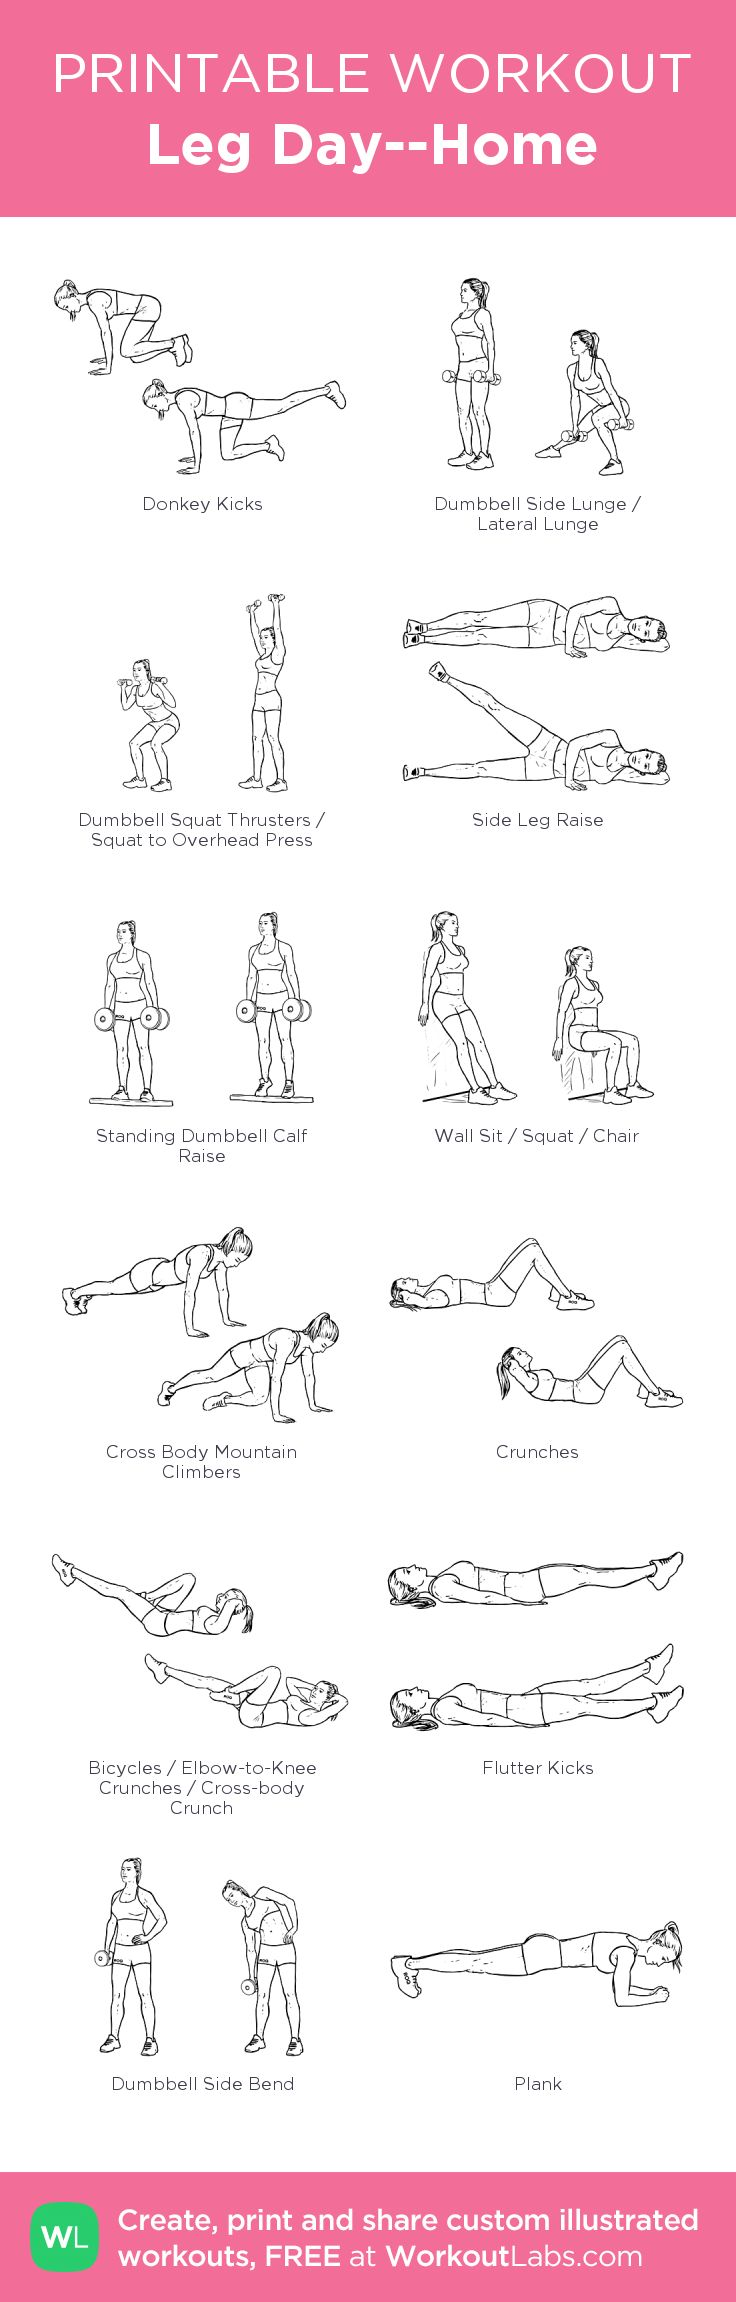 Leg Day--Home:my visual workout created at WorkoutLabs.com • Click through to customize and download as a FREE PDF! #customworkout